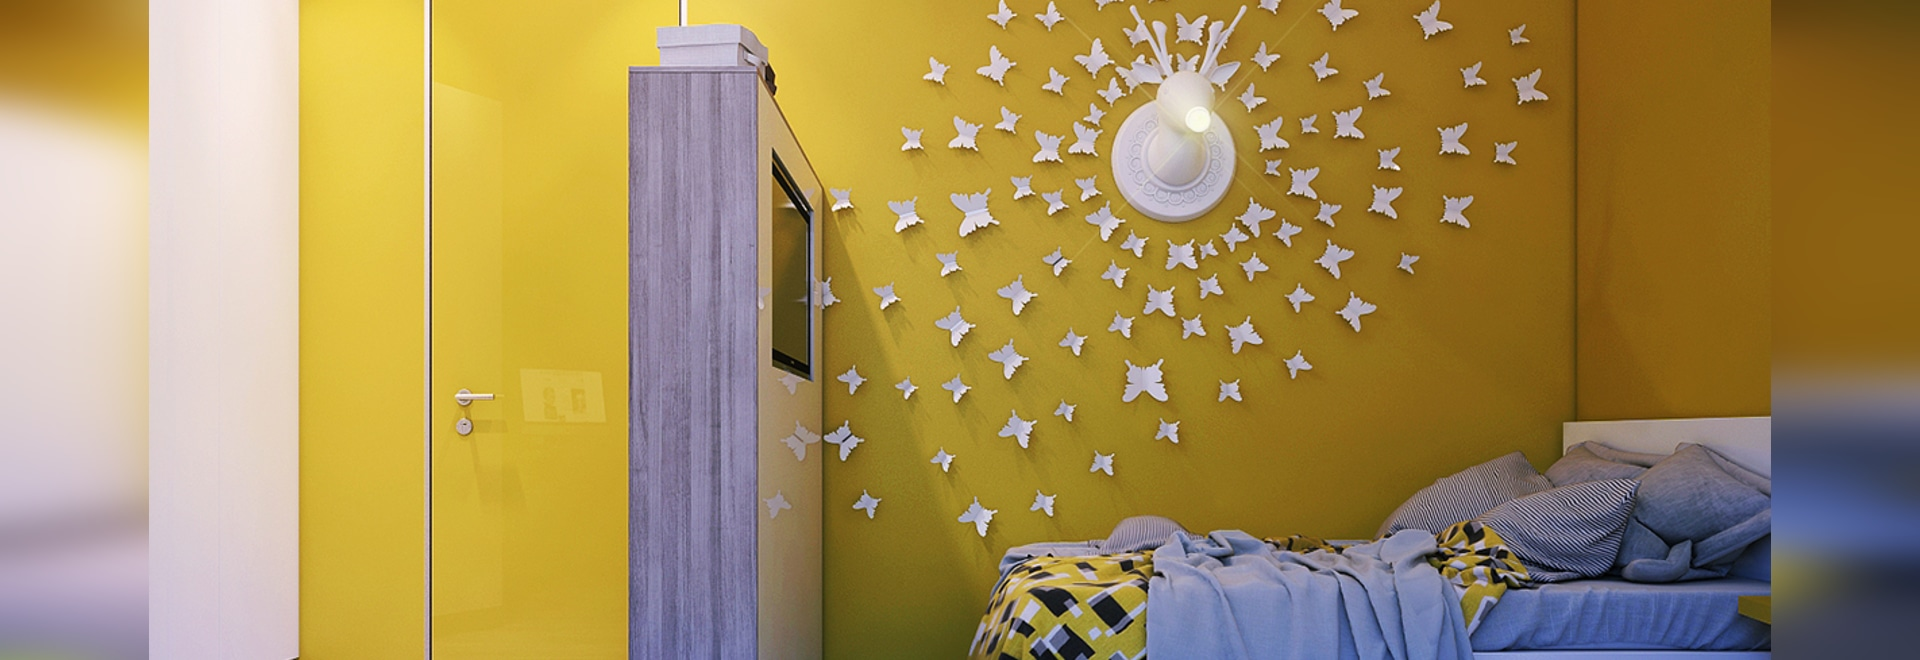 Kids Wall Decor Clever Kids Room Wall Decor Ideas & Inspiration  Russia